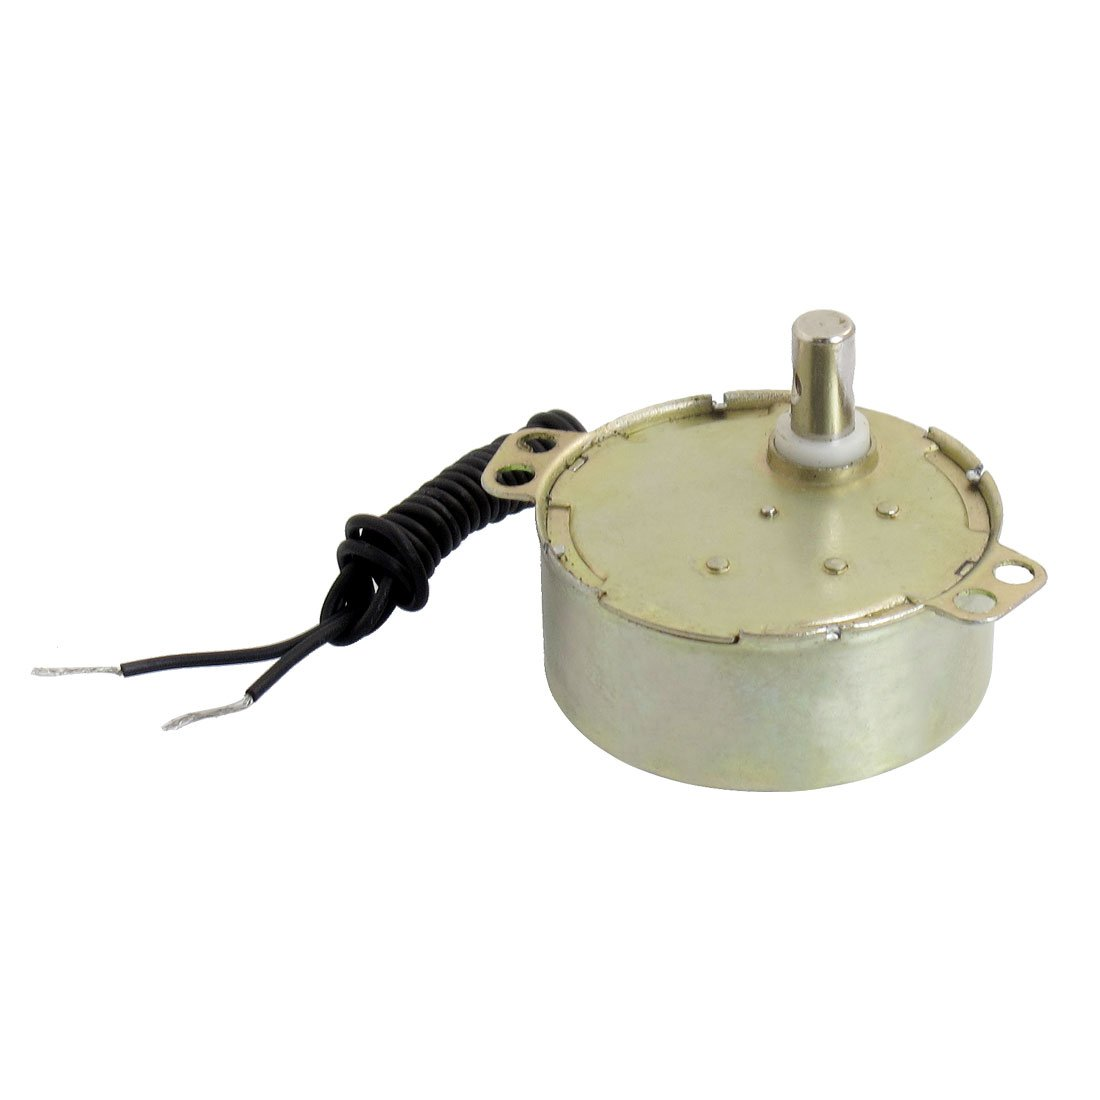 Microwave Oven Synchronous Motor 5/6RPM AC 220-240V 50/60Hz CW/CCW w Black CableMicrowave Oven Synchronous Motor 5/6RPM AC 220-240V 50/60Hz CW/CCW w Black Cable